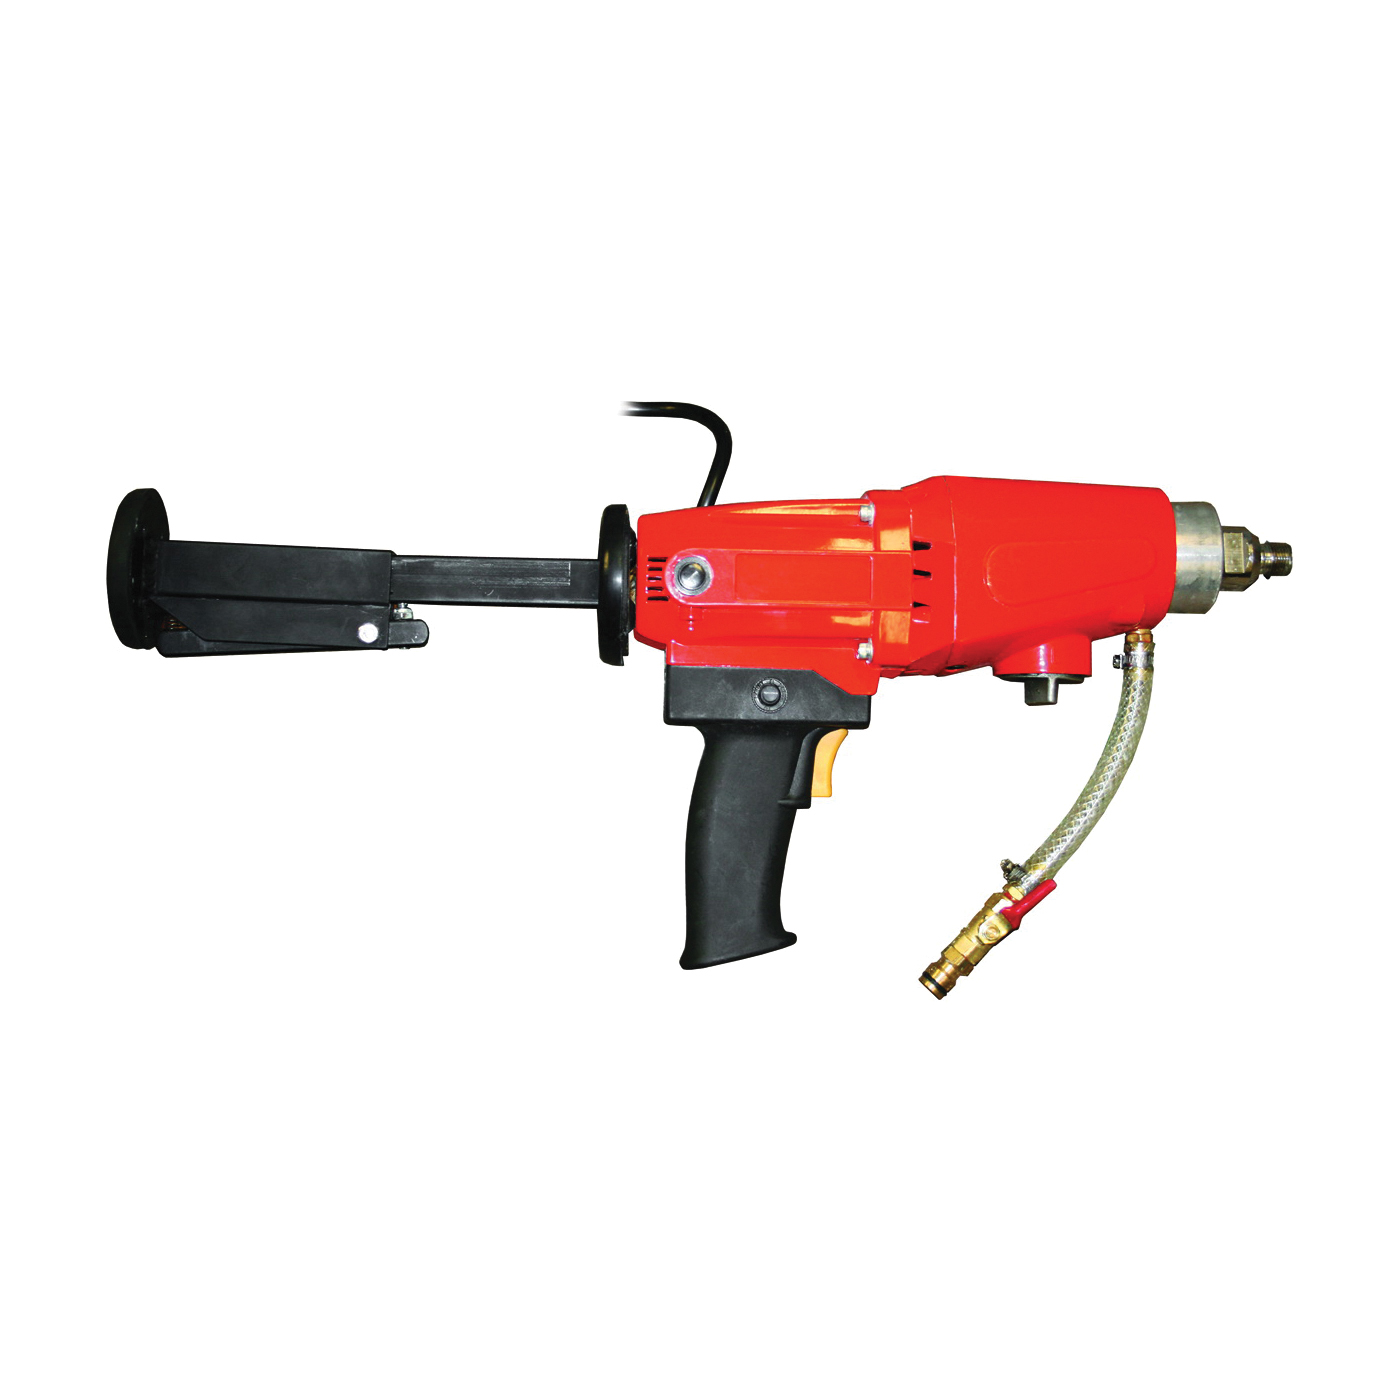 Picture of DIAMOND PRODUCTS 66672 Electric Drill, 115 V, 1300 W, 350 to 900 rpm No Load